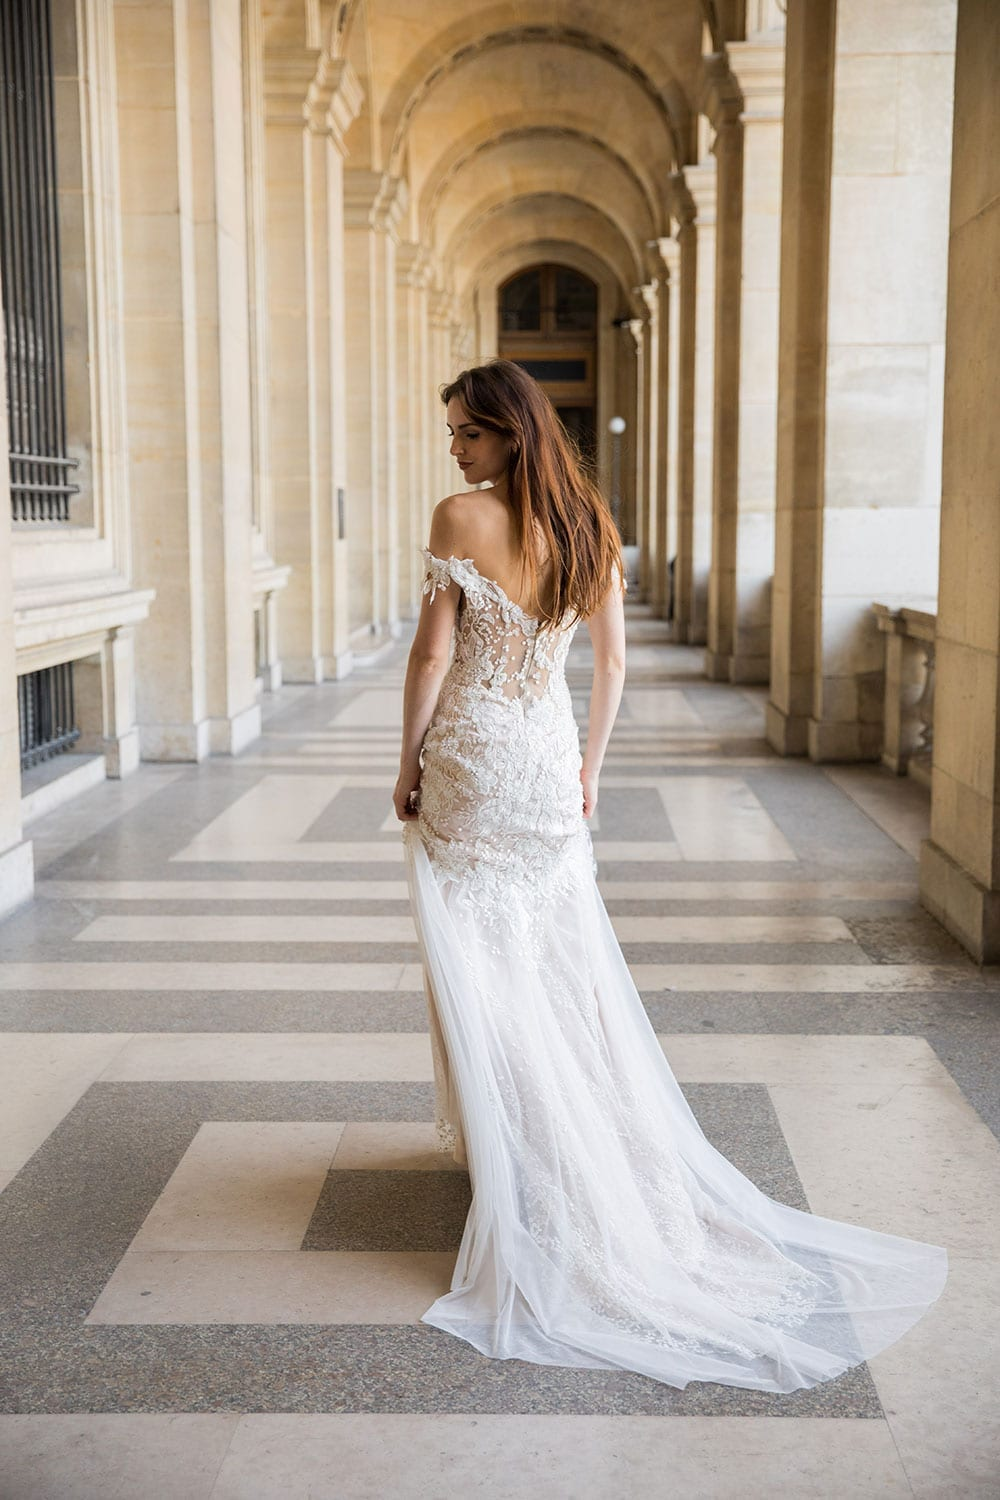 Model wearing Vinka Design Sashia Wedding Dress, an Off-Shoulder Fitted Lace and Tulle Gown in long corridor of archways in building in Paris